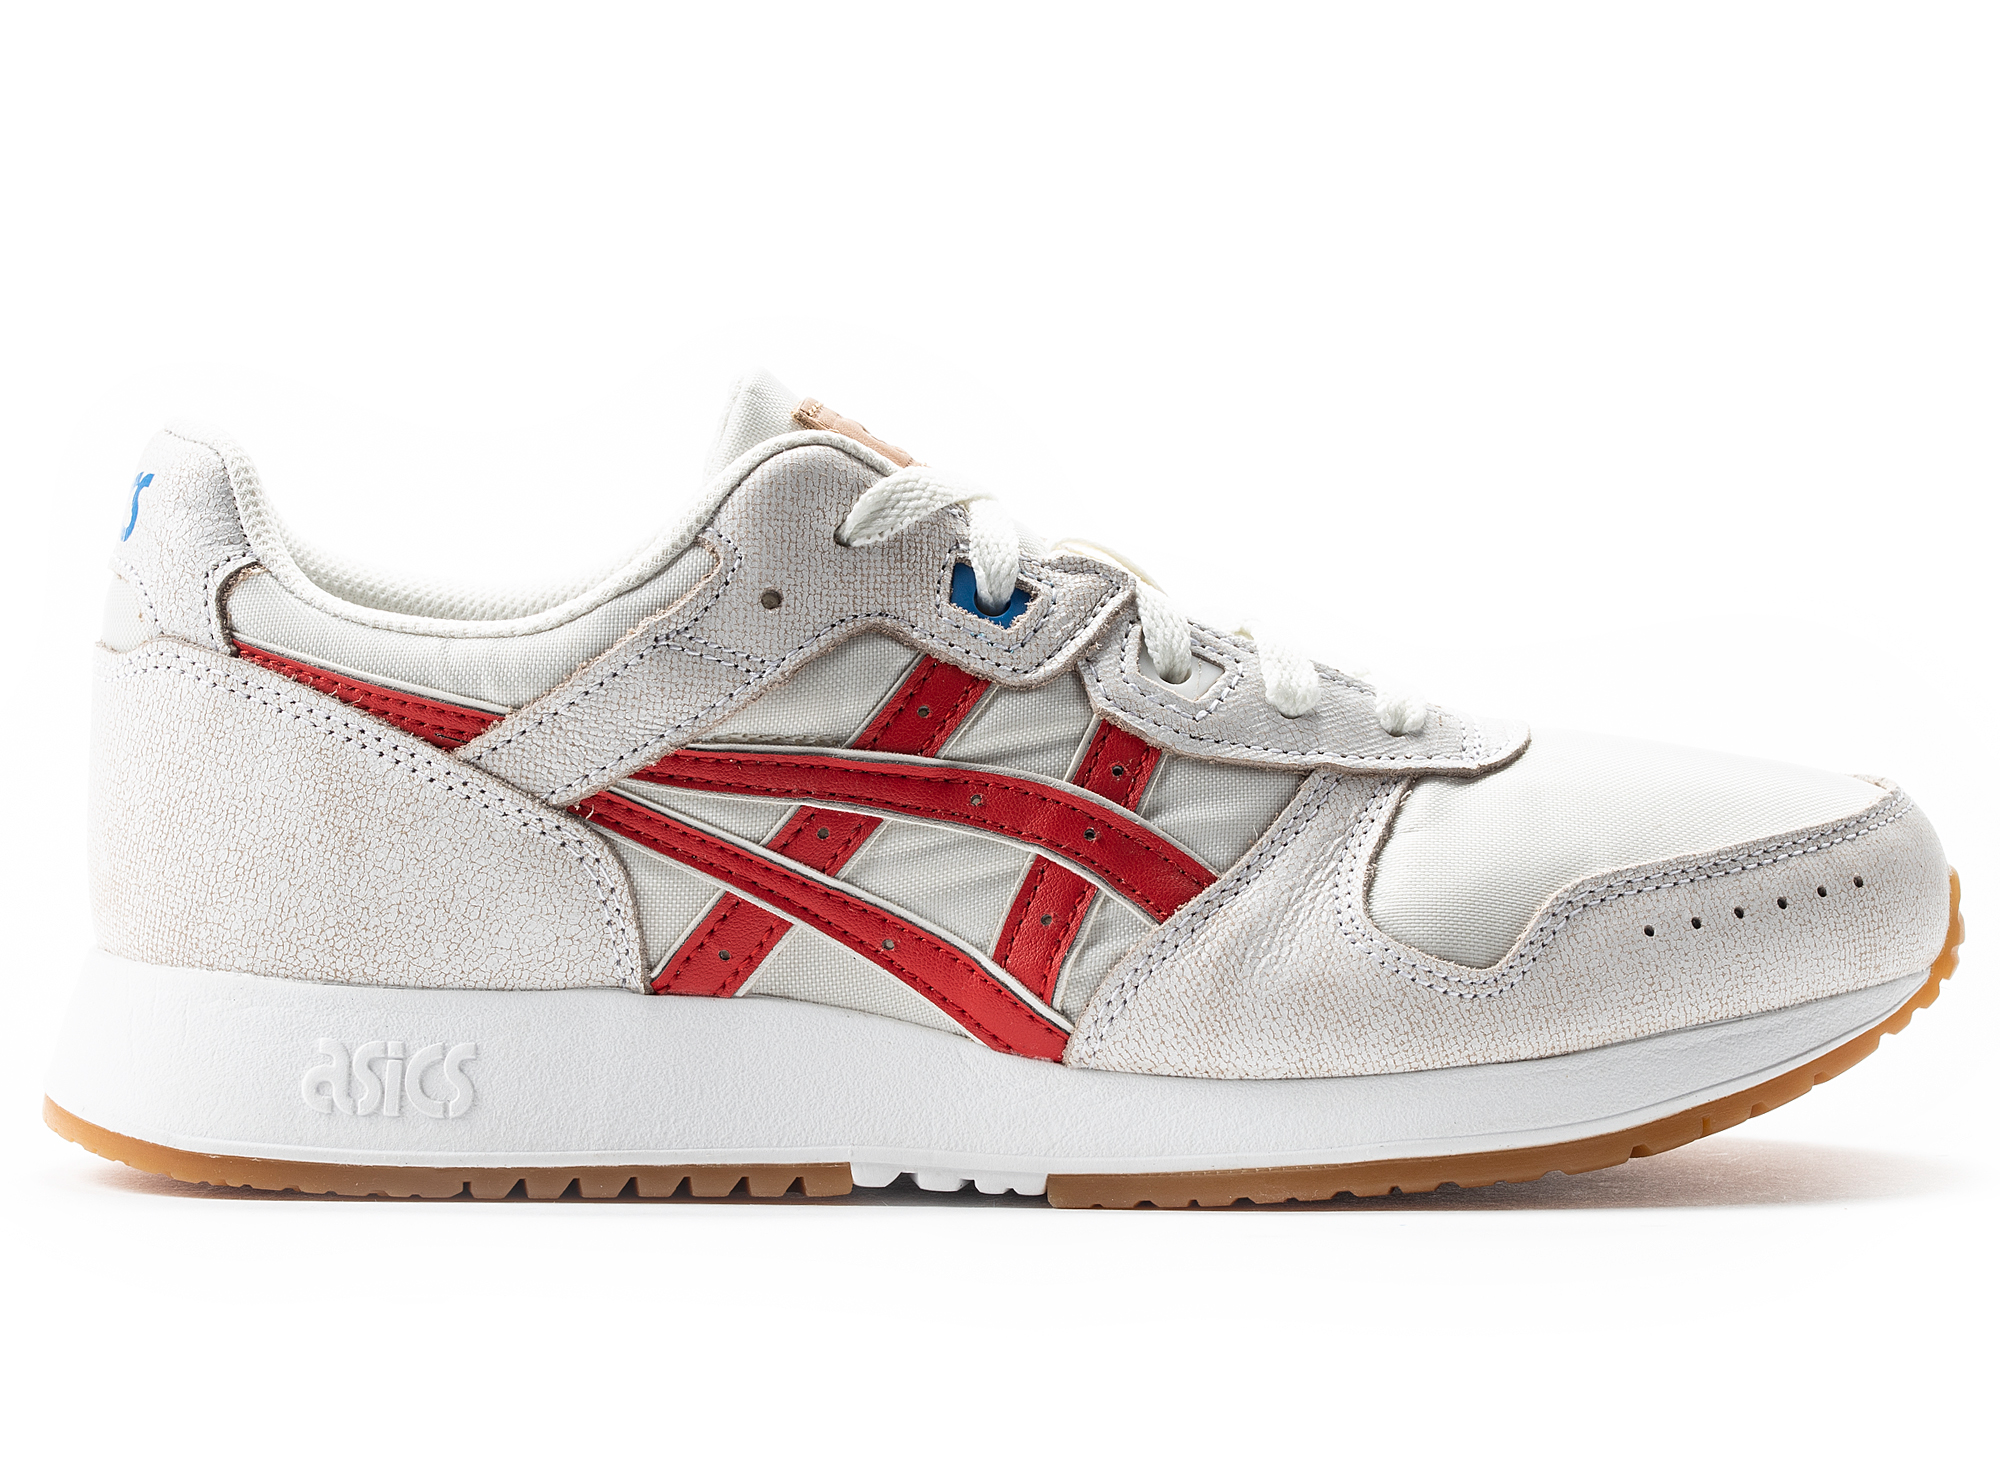 Asics Lyte Classic - Oneness Boutique